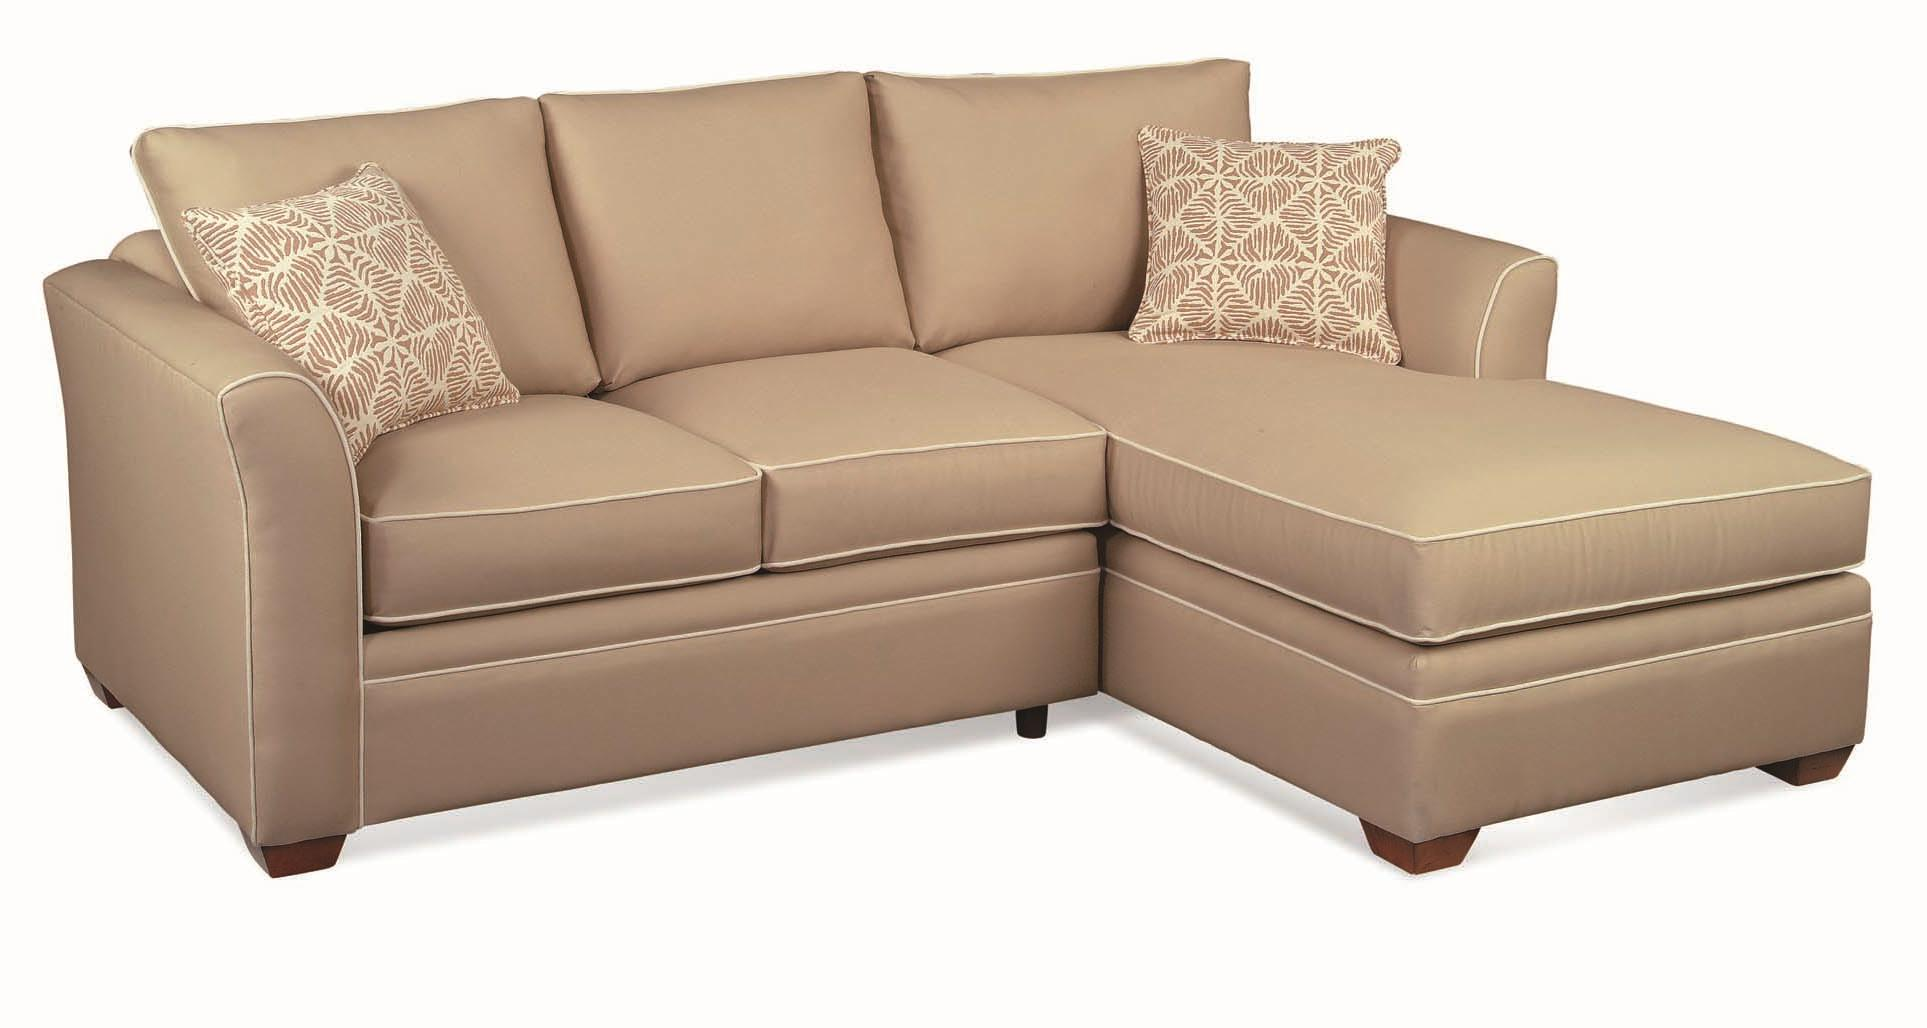 Braxton Culler Bridgeport Casual 2 Piece Sectional Sofa with ...